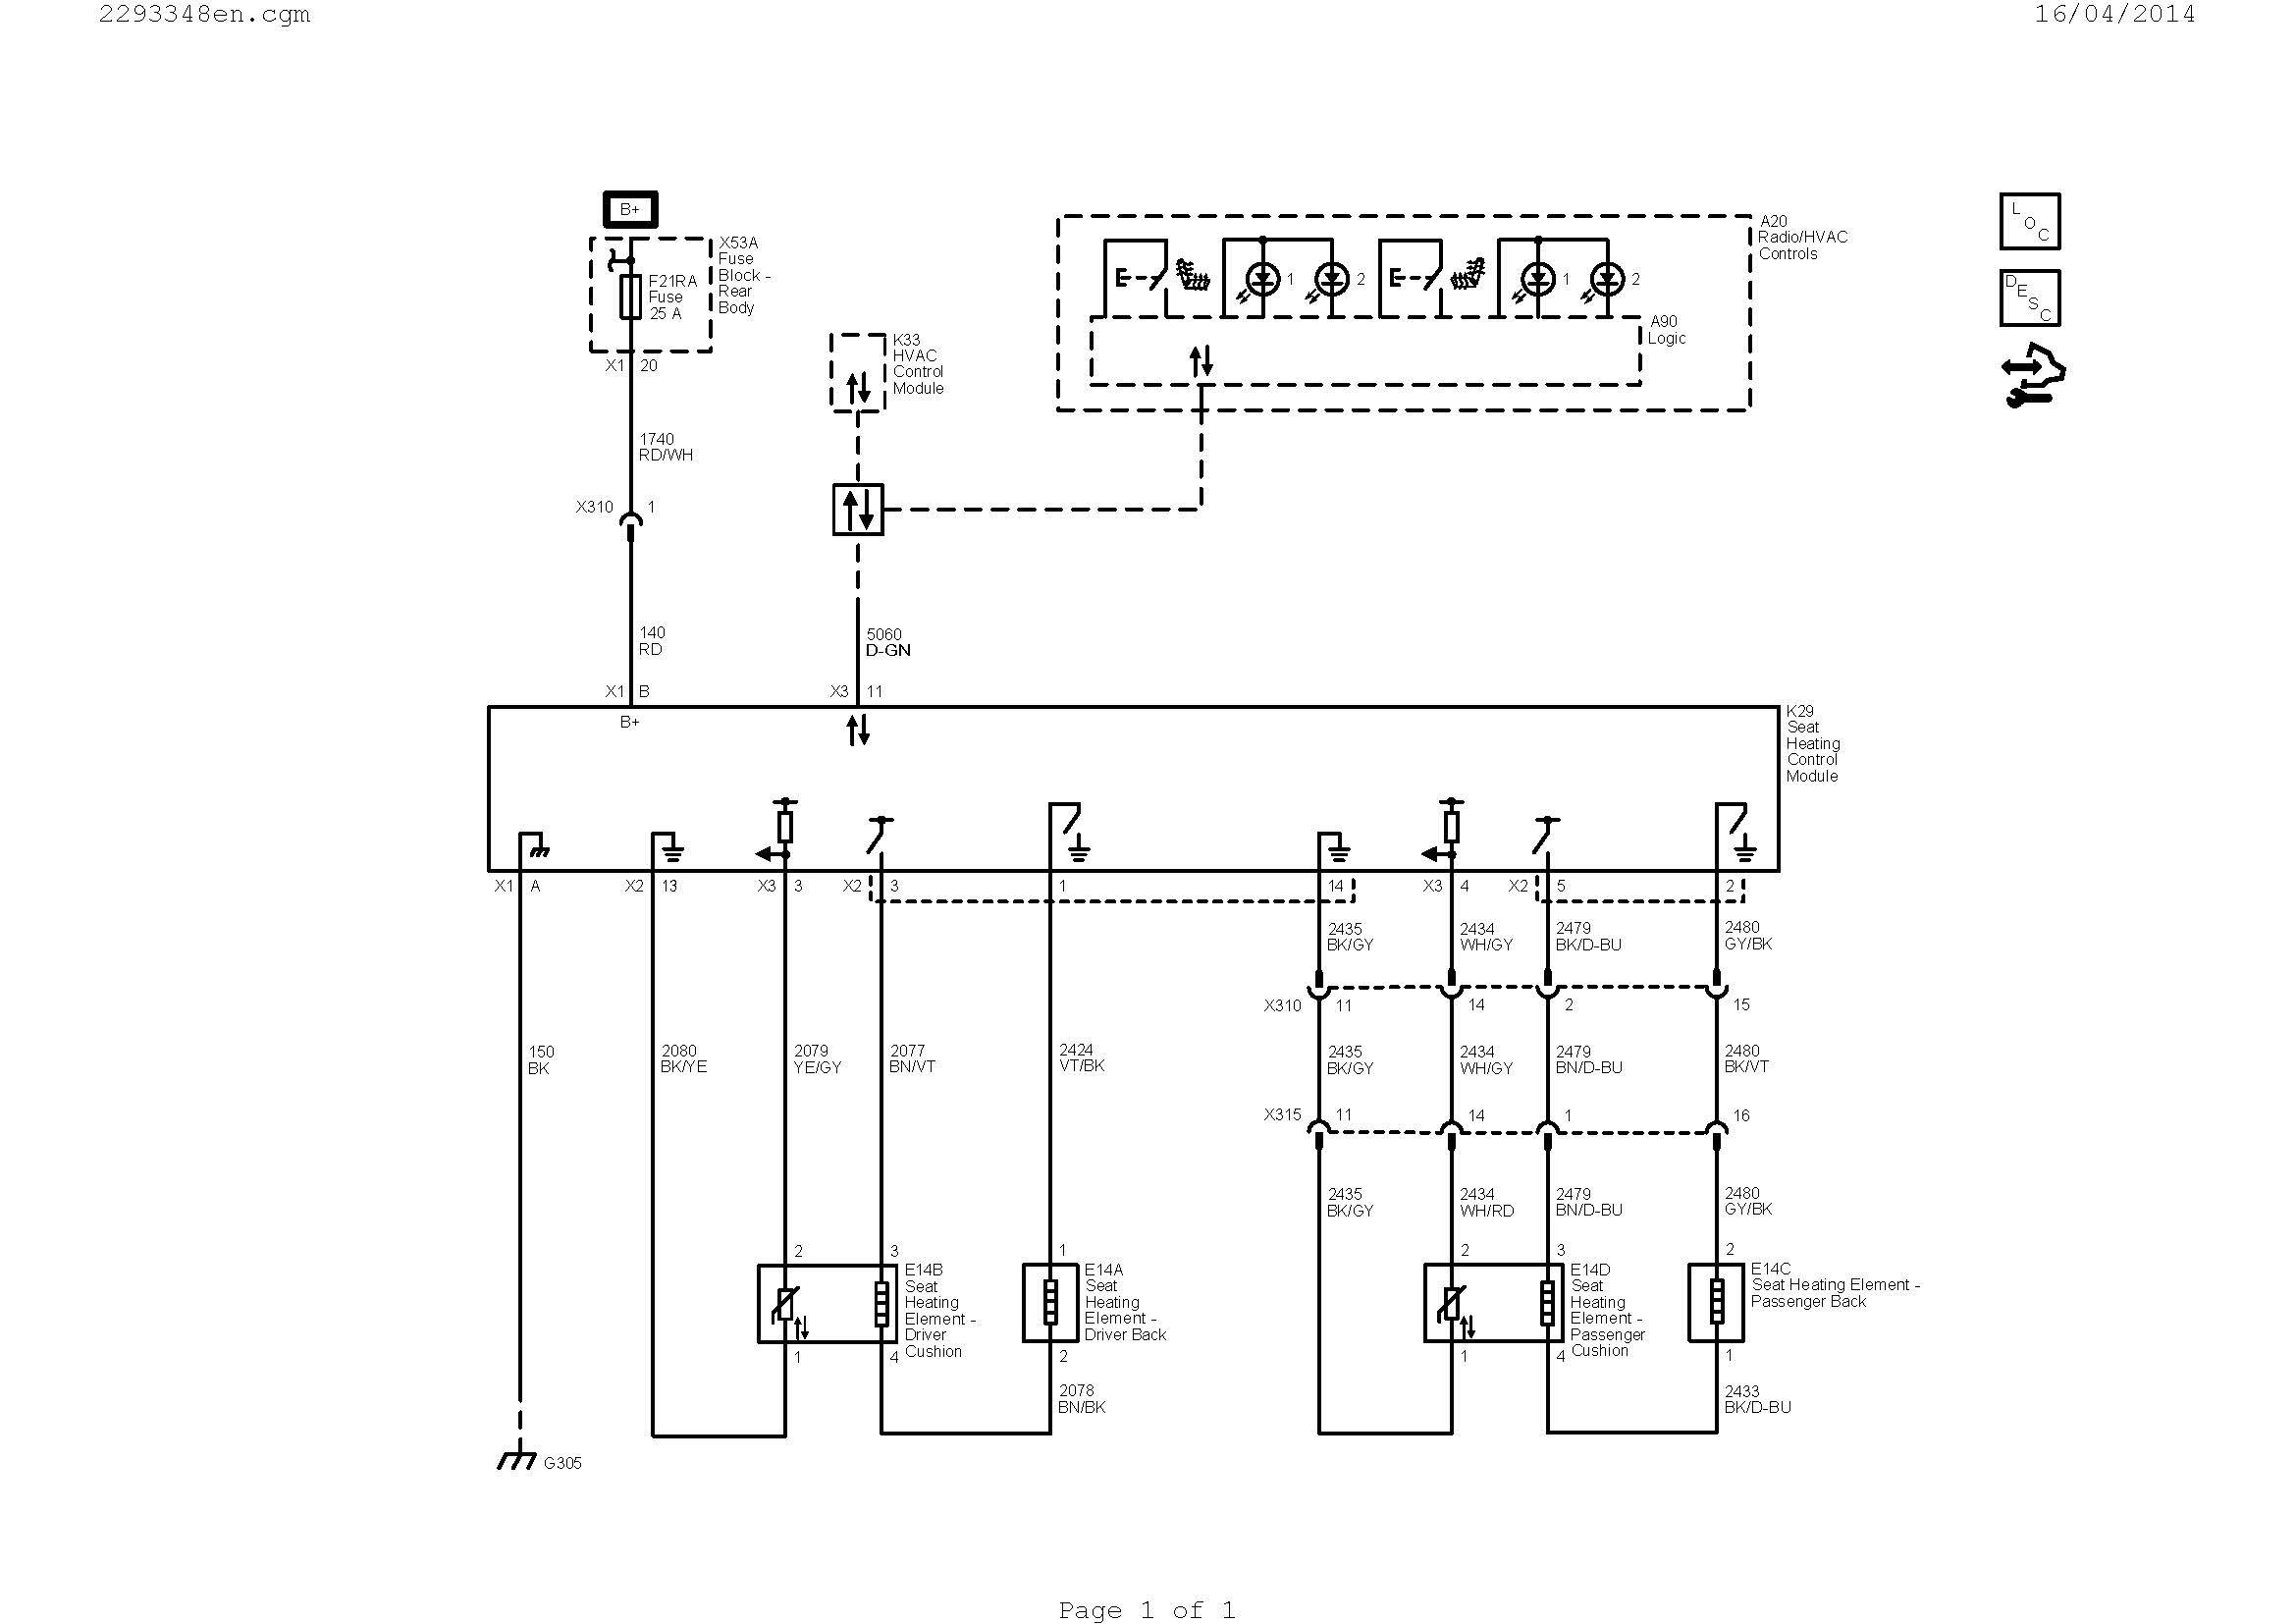 v8043f1036 wiring diagram Collection-v8043f1036 wiring diagram Download Wiring Diagram for A Relay Switch Save Wiring Diagram Ac Valid DOWNLOAD Wiring Diagram 18-g